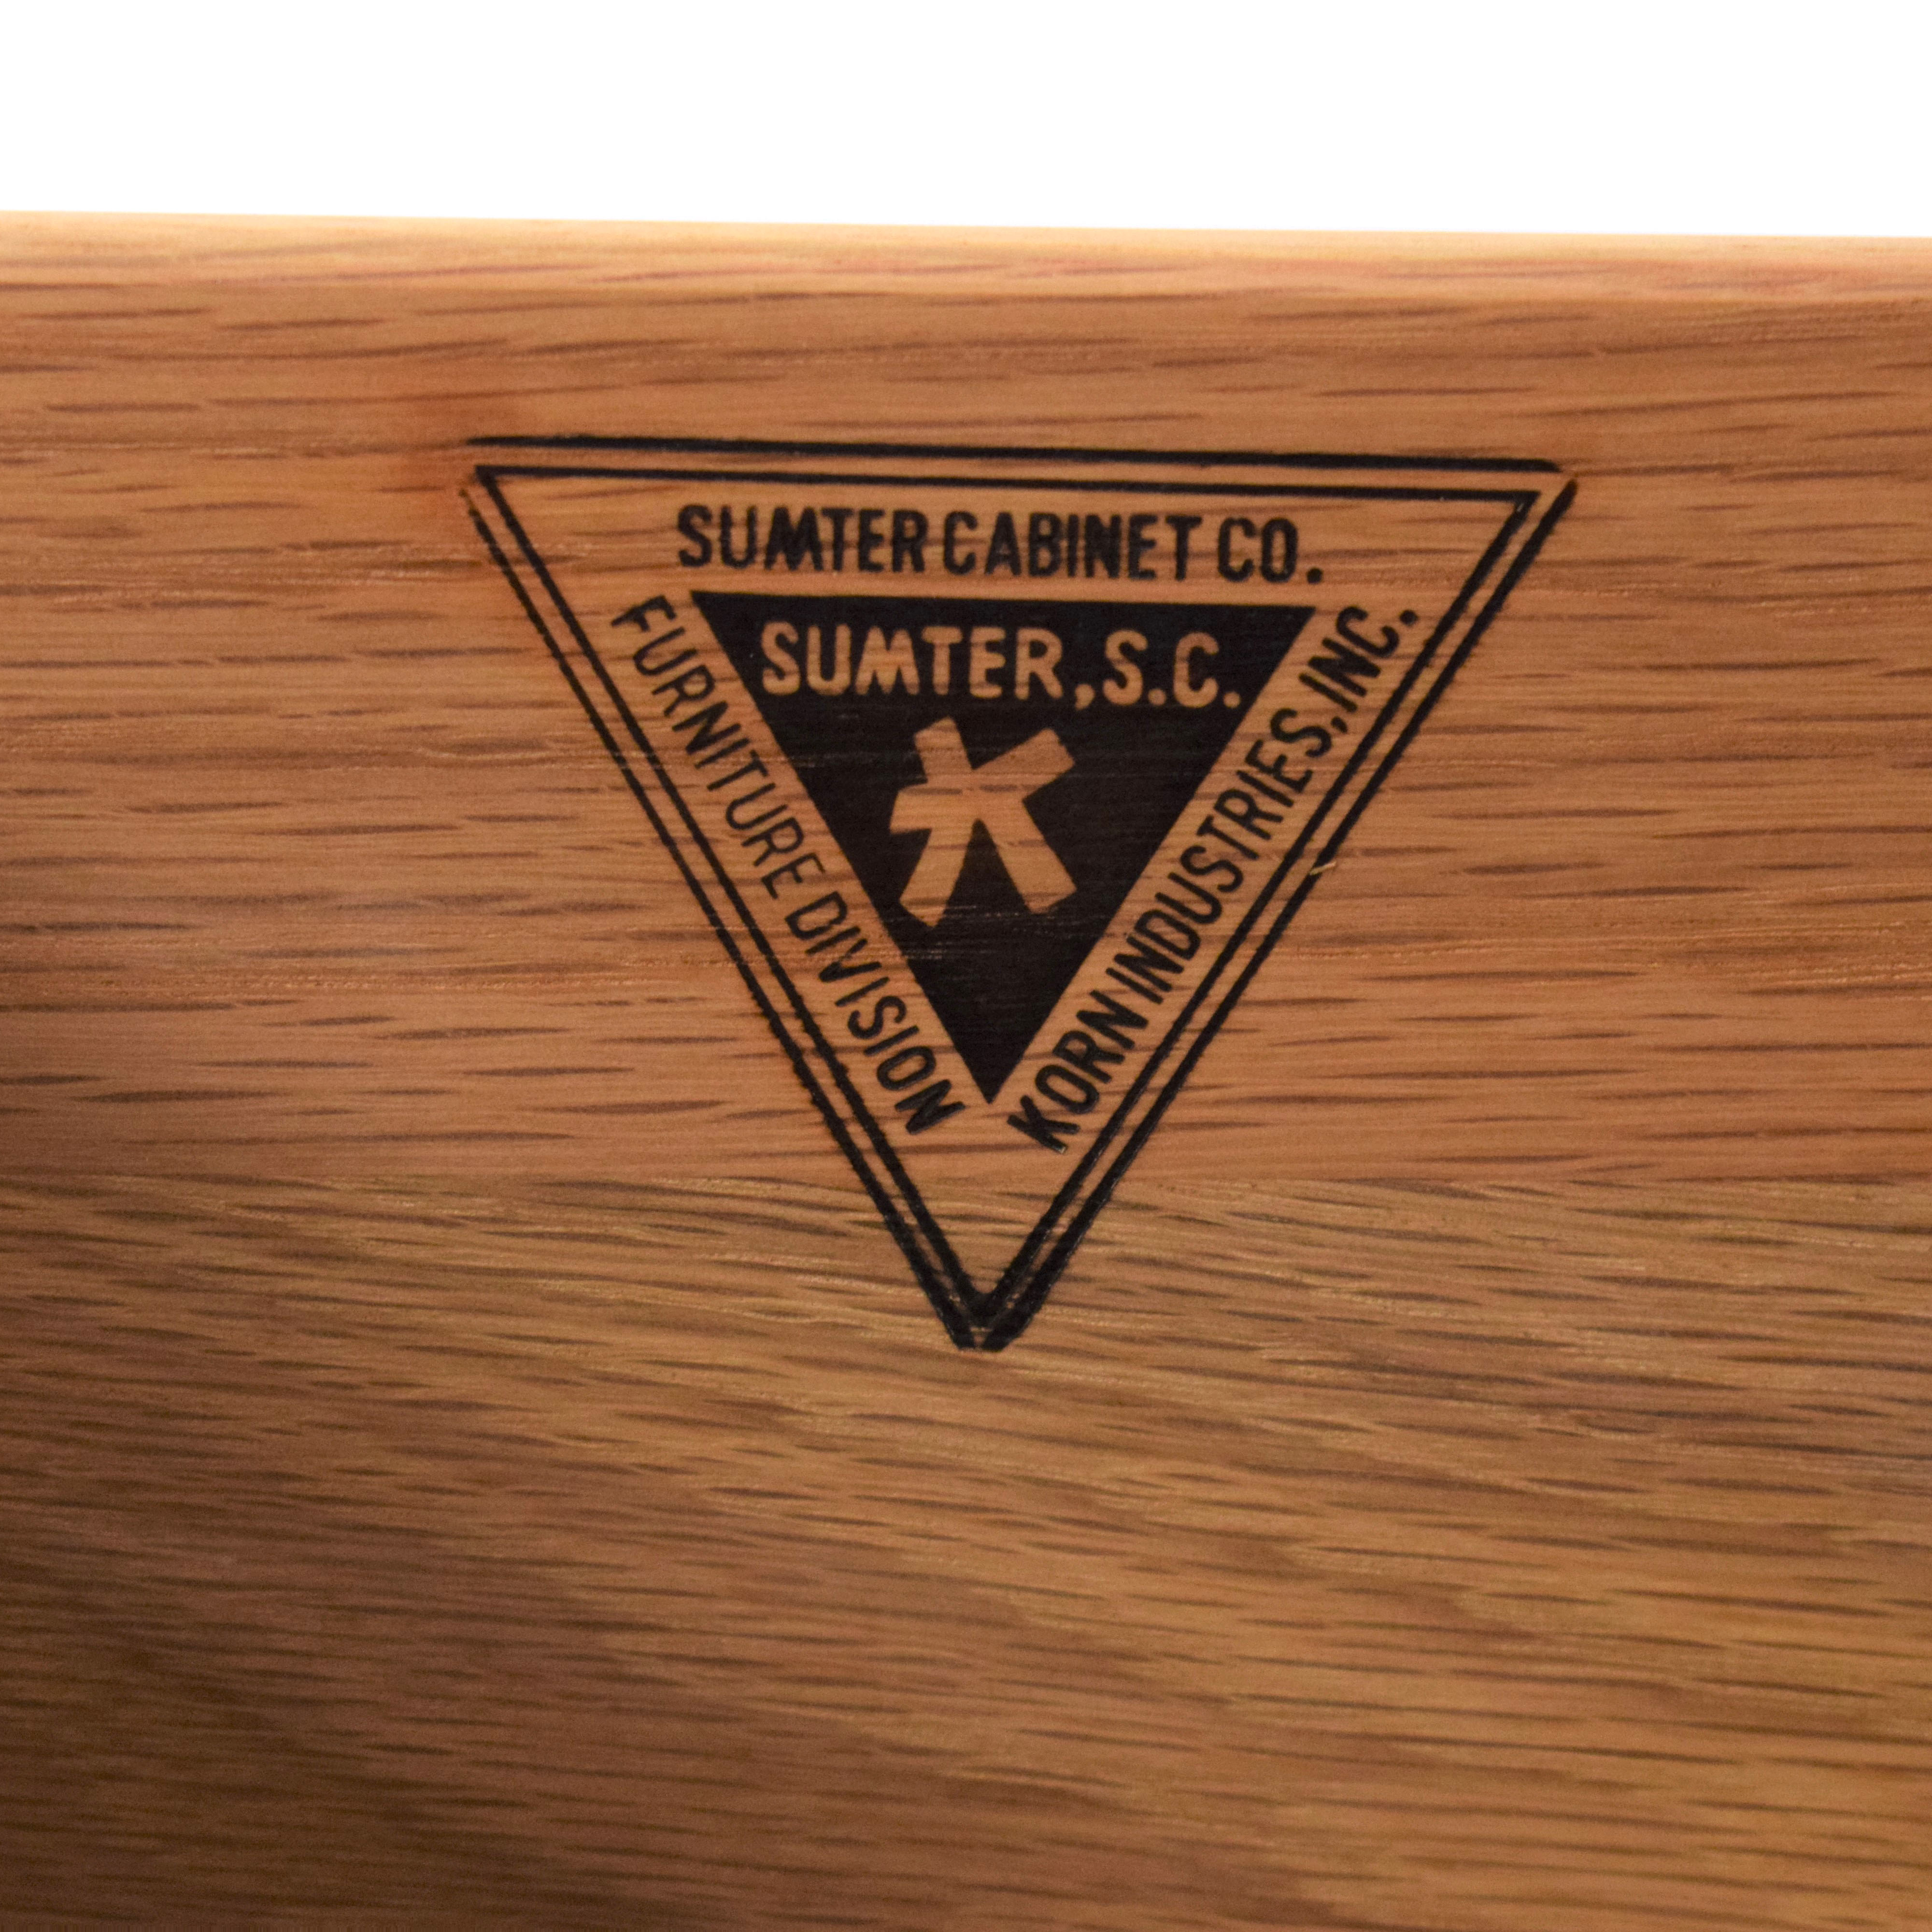 Sumter Cabinet Co. Sumter Cabinet Company Bar Cart Buffet Sideboard brown